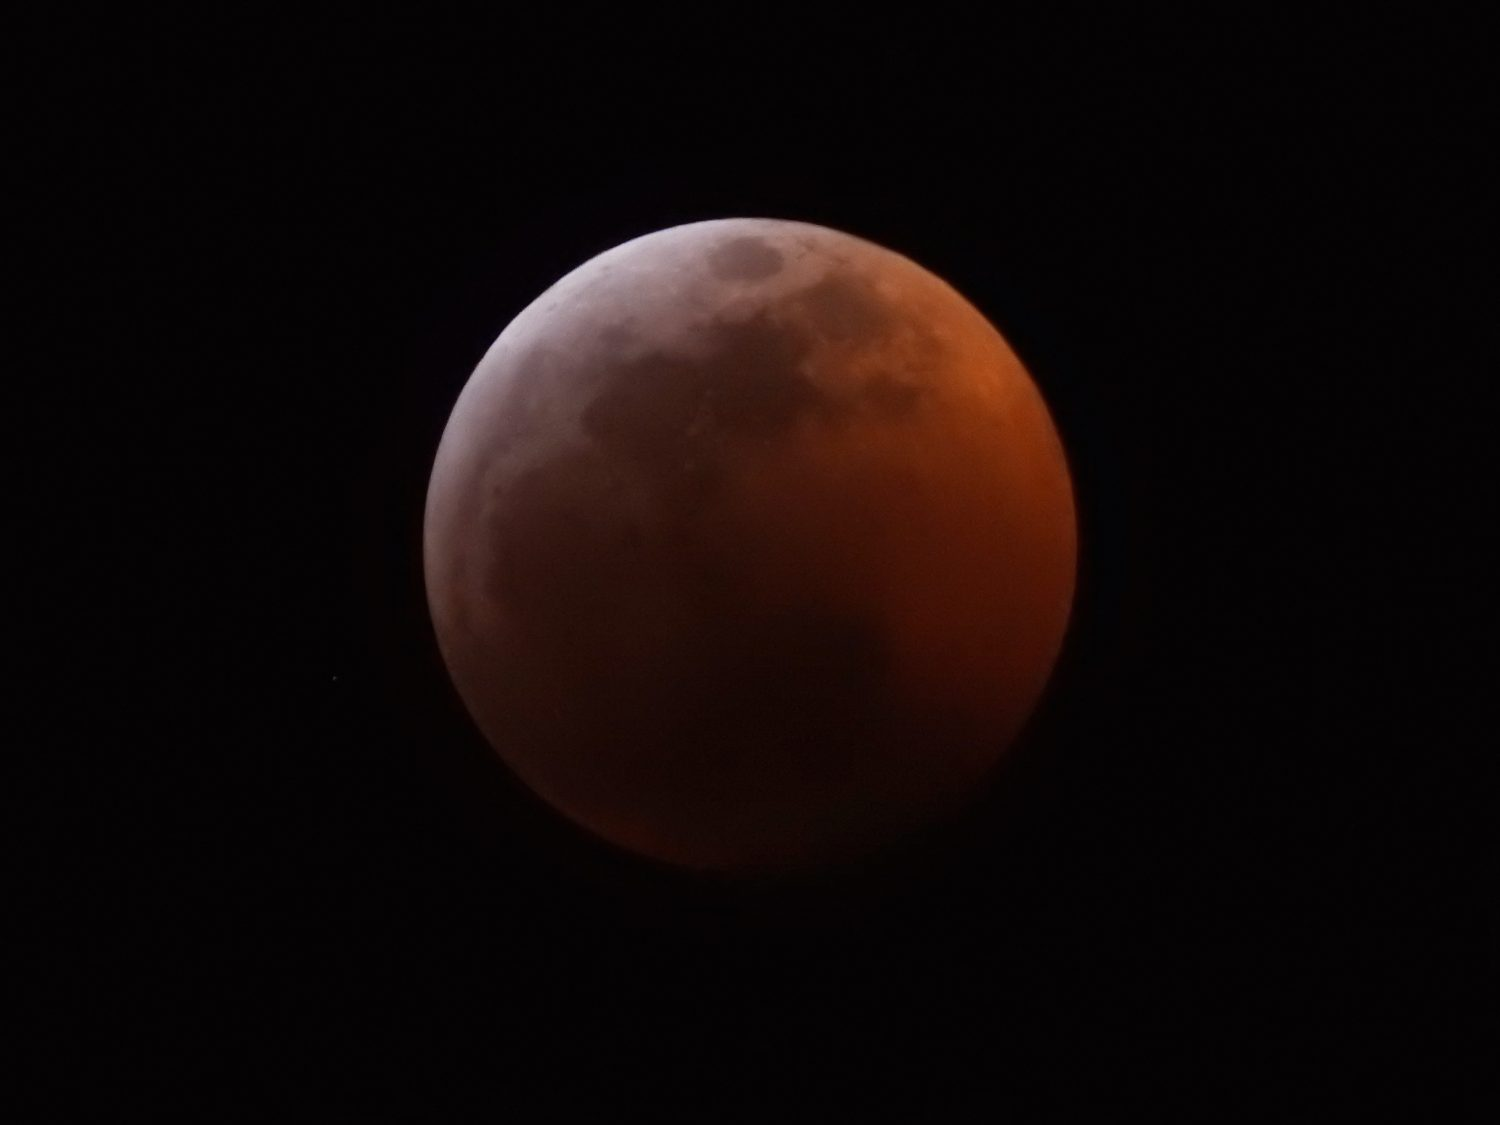 PHOTOS Blood red supermoon lunar eclipse on Jan 20 2019 The Know 1500x1125